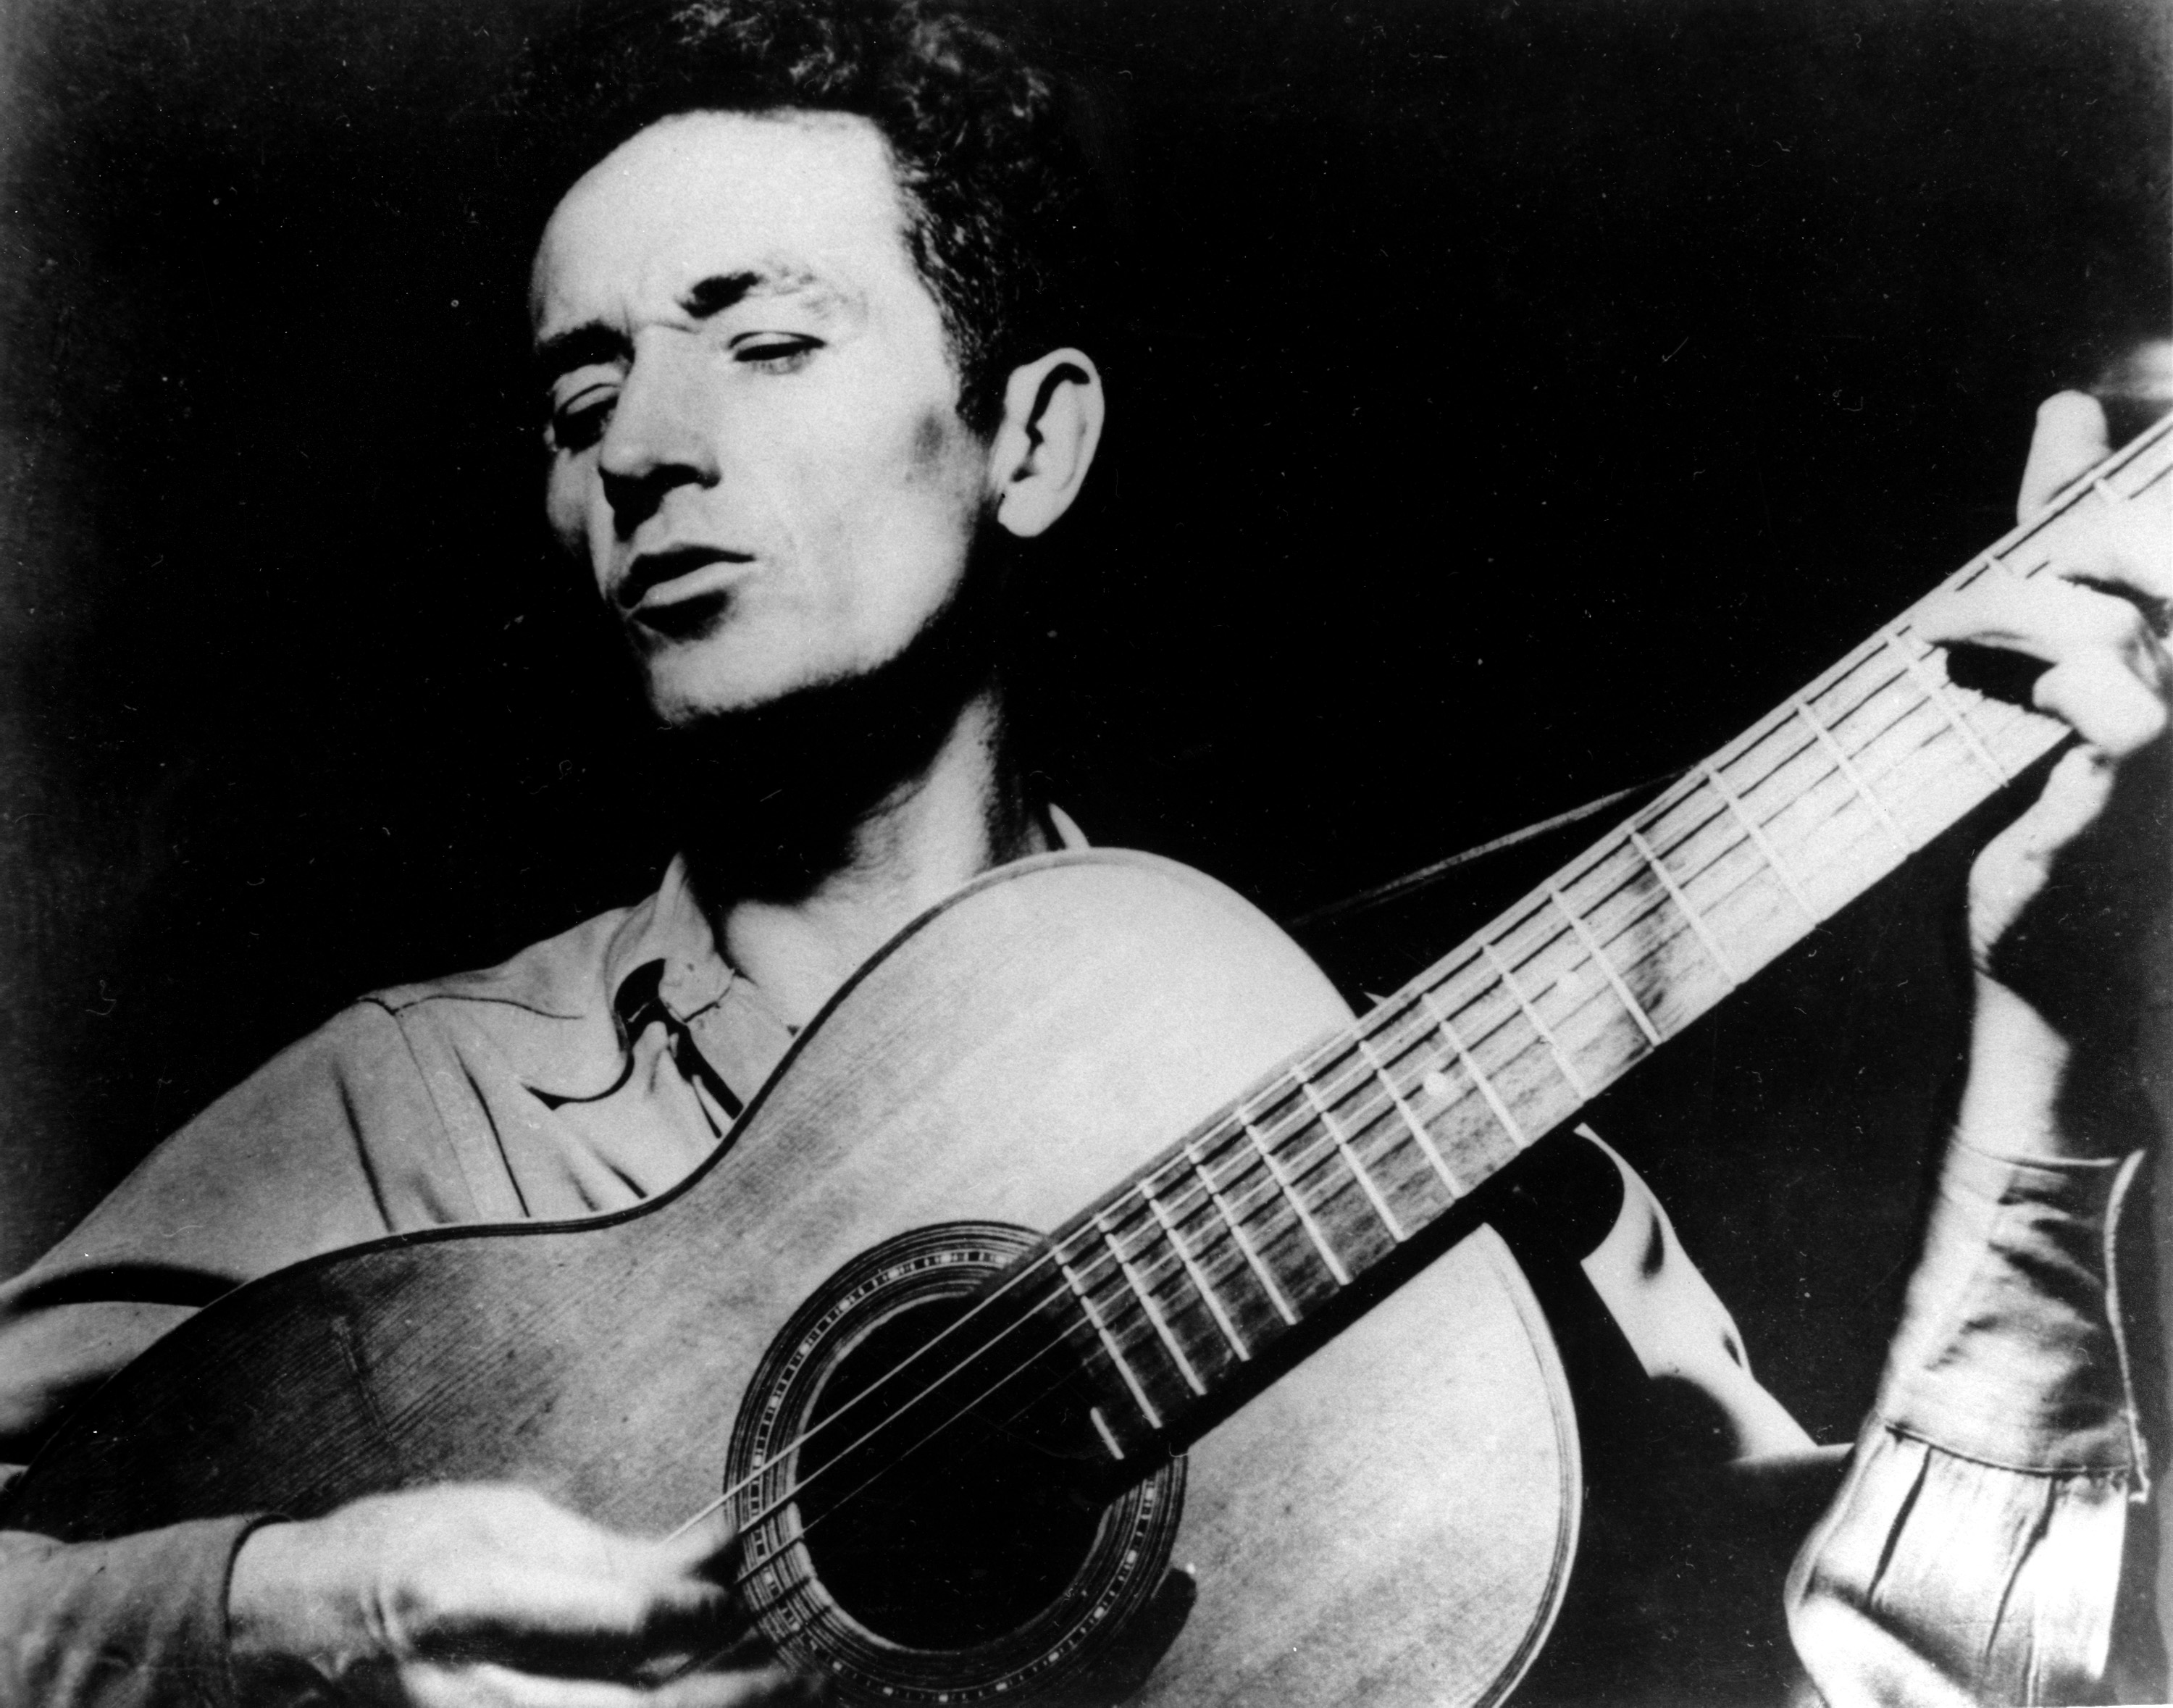 Folk singer, Woody Guthrie, singing a song and playing his guitar.